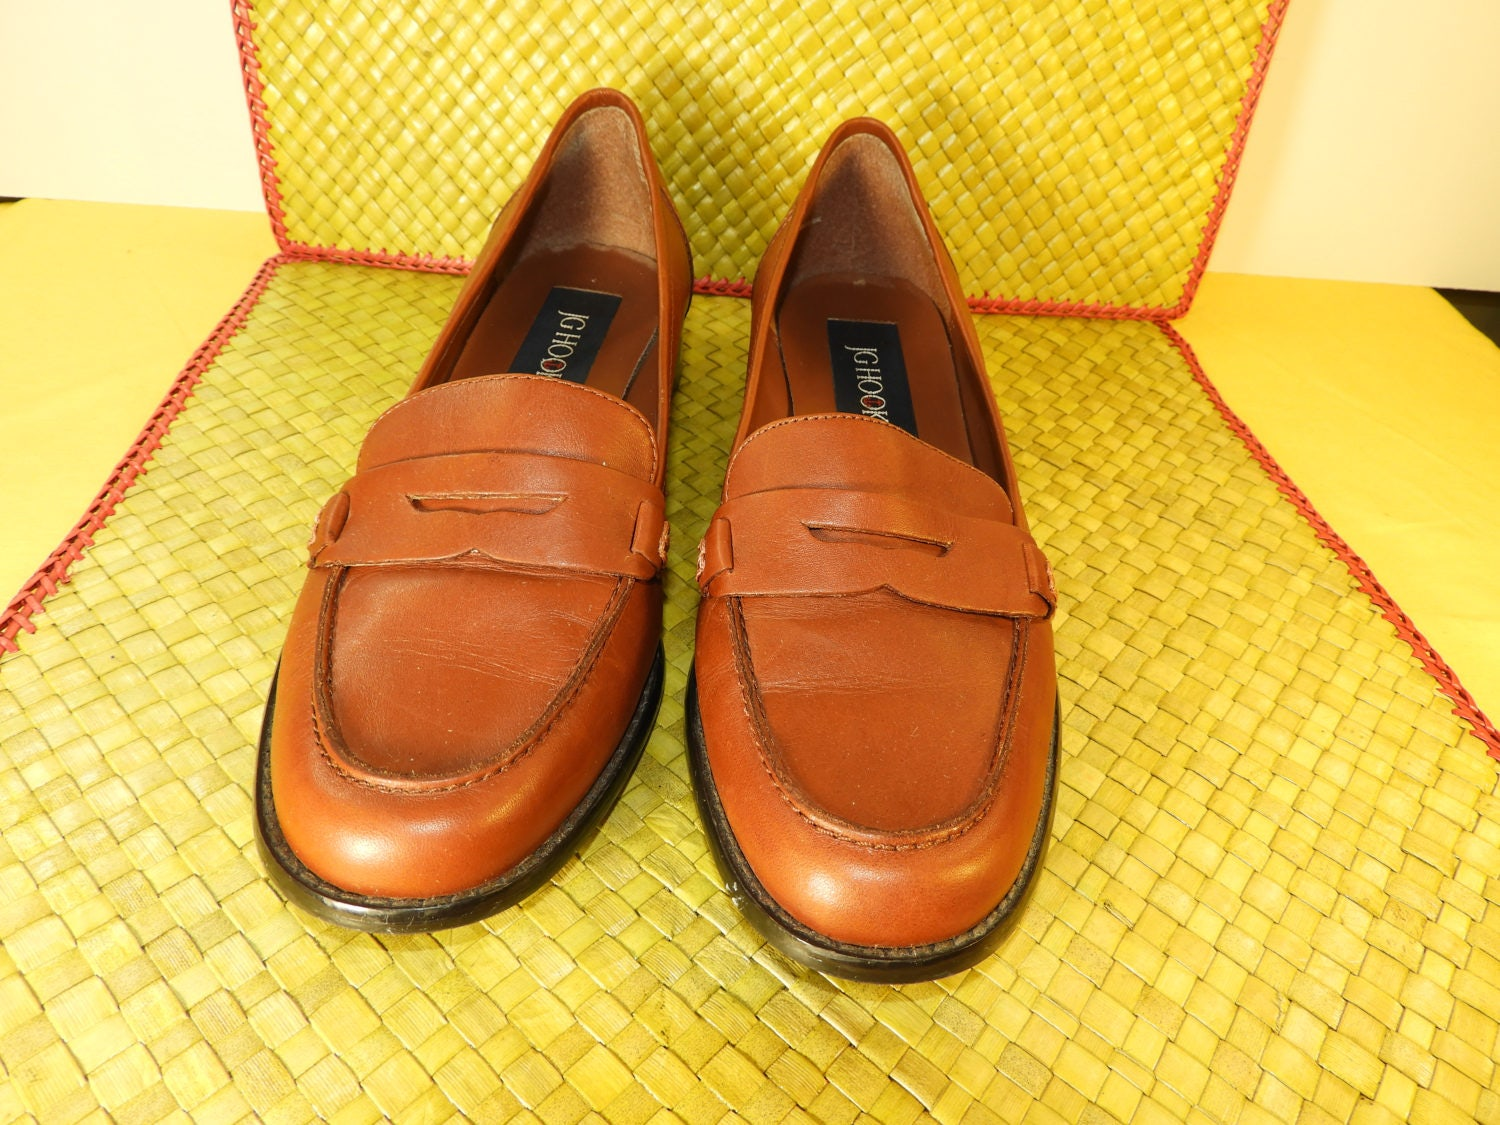 Vintage Penny Loafers JG Hook Shoes Size 9M, Womens Shoes